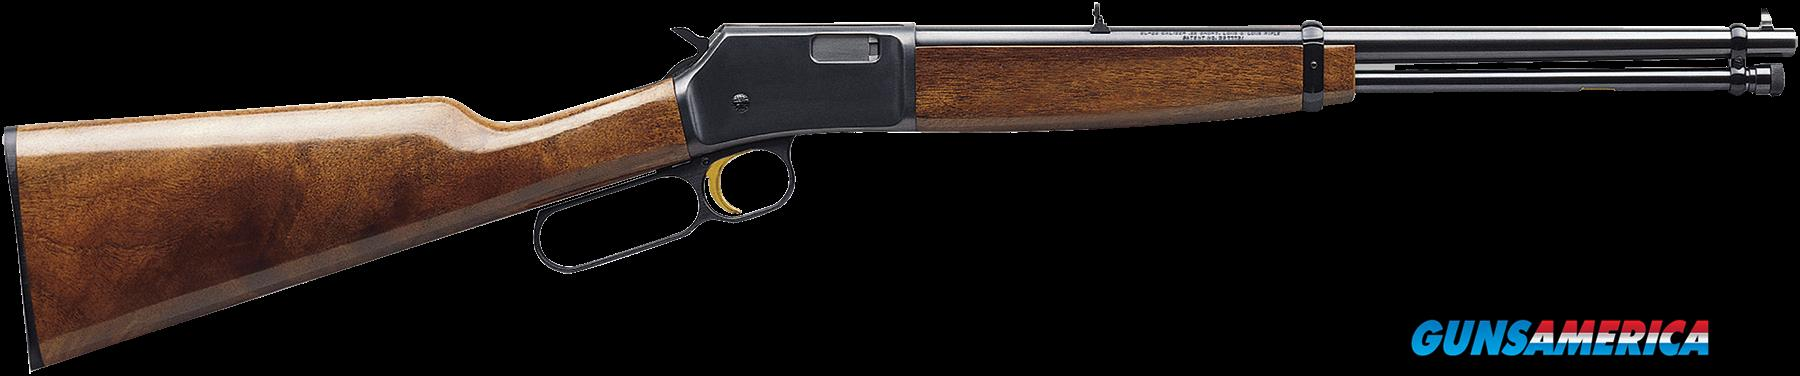 "Browning 024115103 BL-22 Micro Midas Lever 22 Short/Long/Long Rifle 16.25"" 11+1 Walnut Stock Blued  Guns > Rifles > B Misc Rifles"